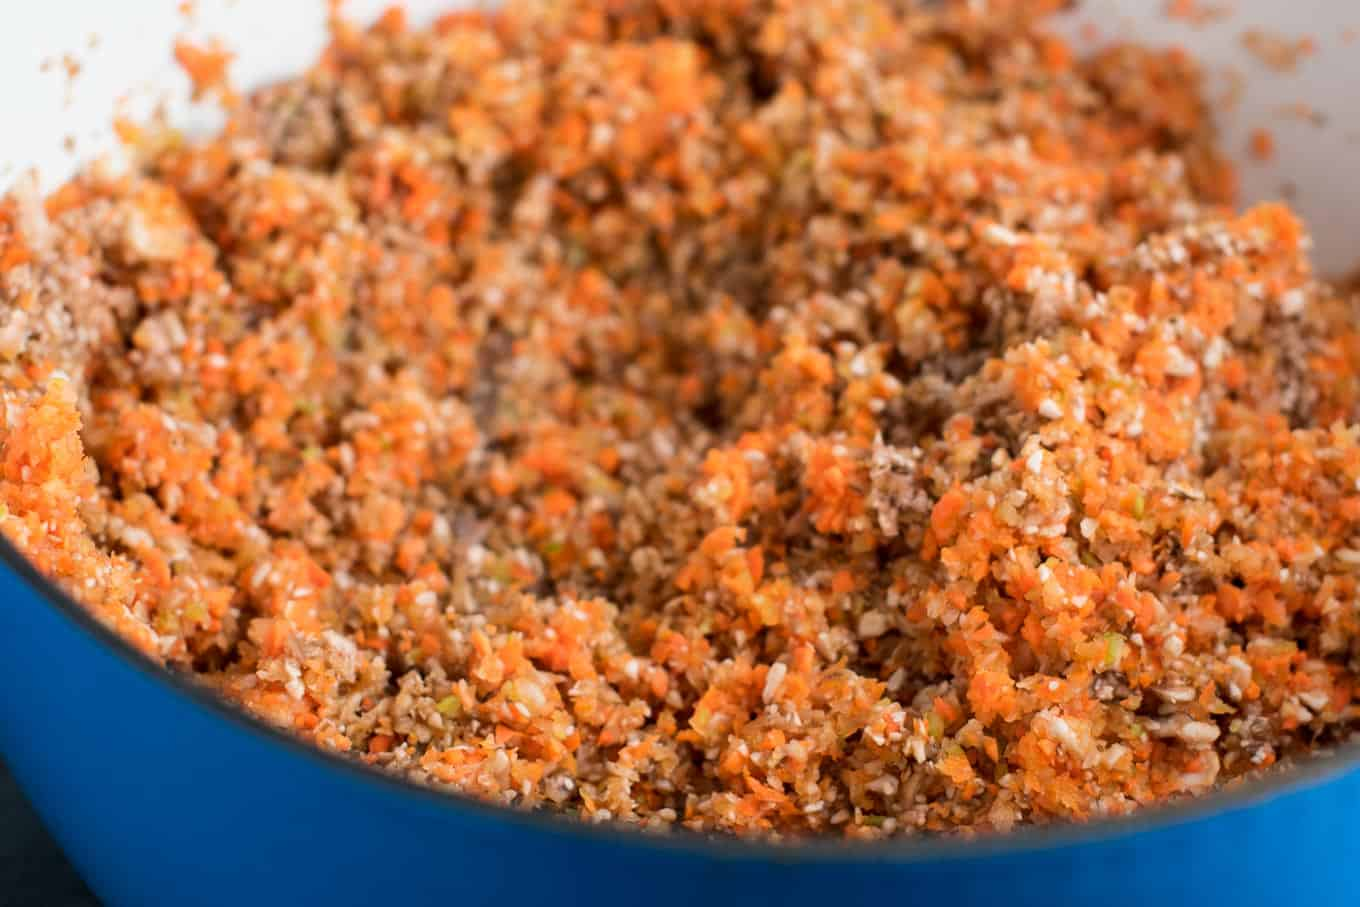 """Vegetable bolognese recipe made with mushrooms, carrots, celery, garlic, and onion. A delicious meatless vegetarian """"meat"""" sauce recipe. #vegetablebolognese #vegan #vegetarian #bologneserecipe"""